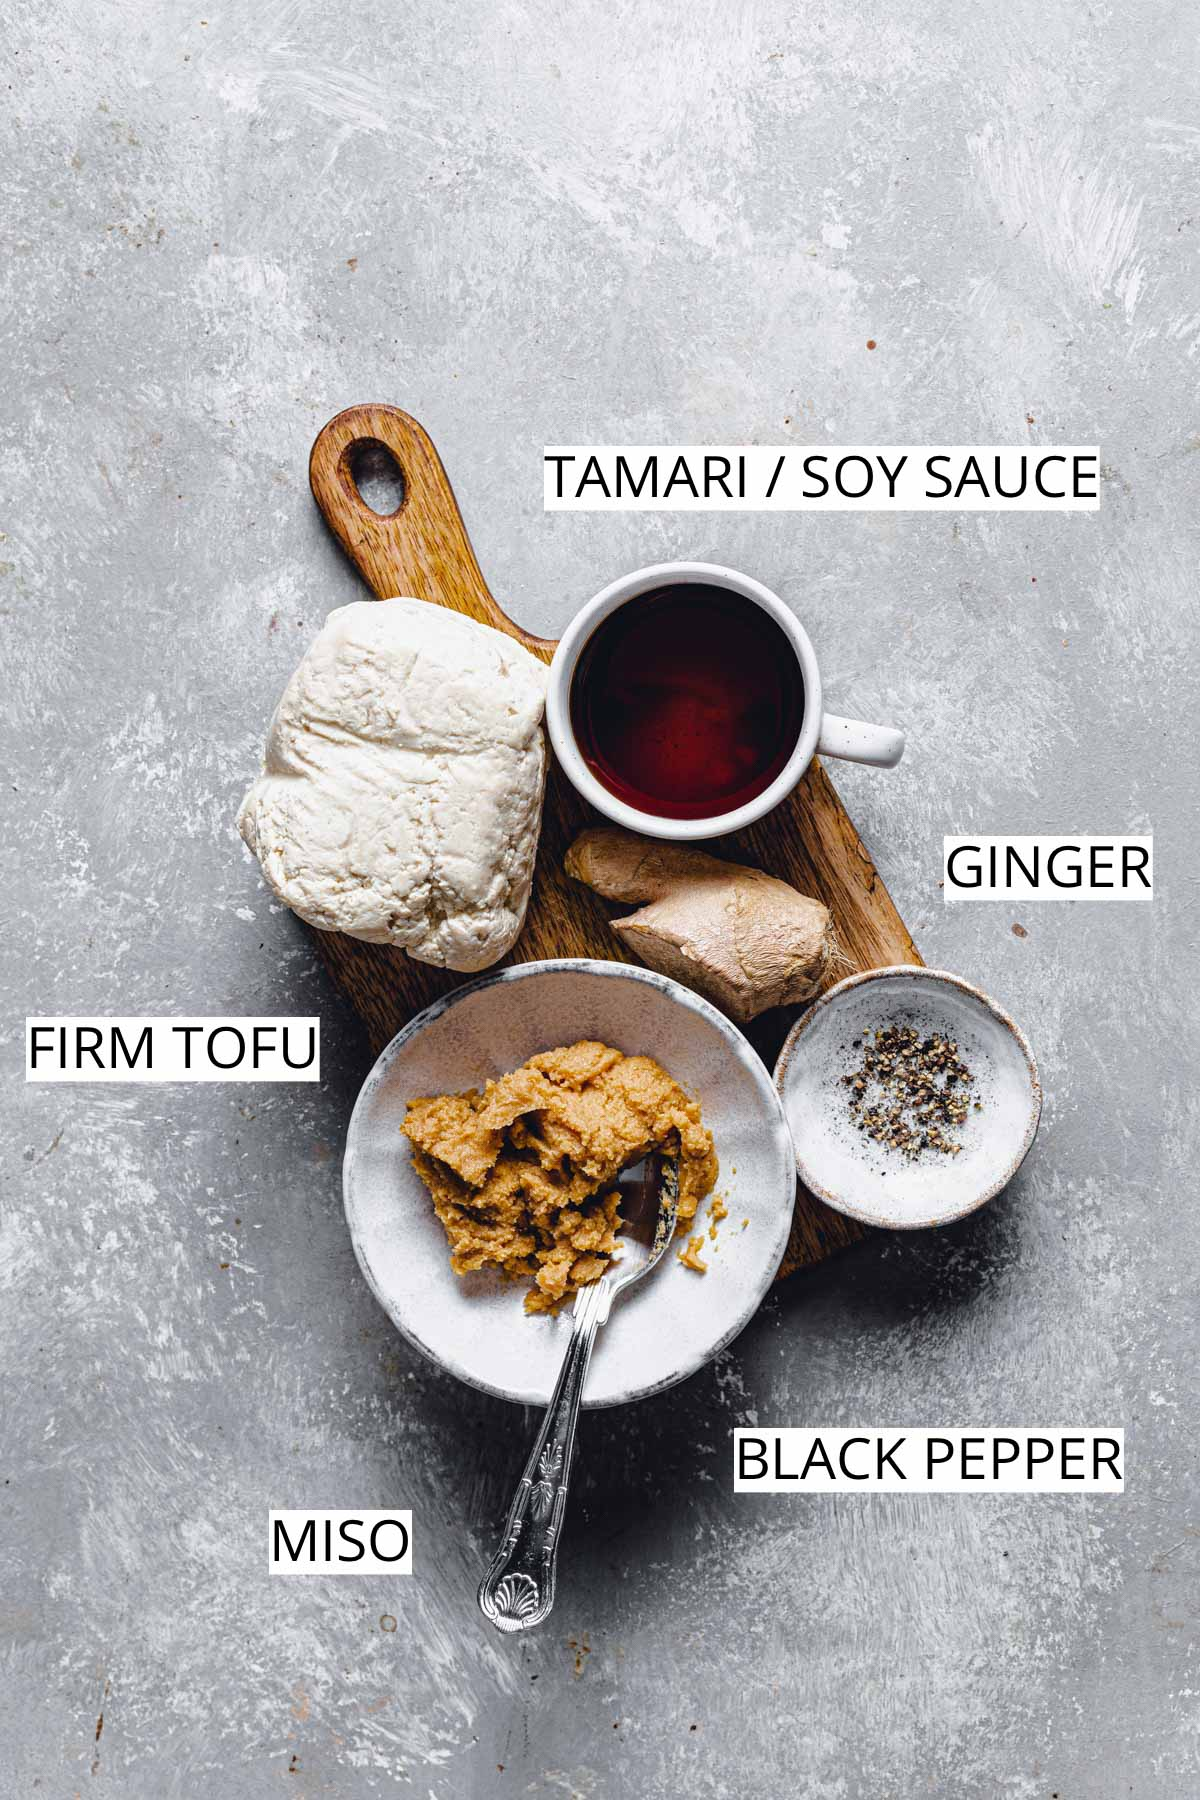 All 4 ingredients needed to make miso marinated tofu placed on a small wooden chopping board.